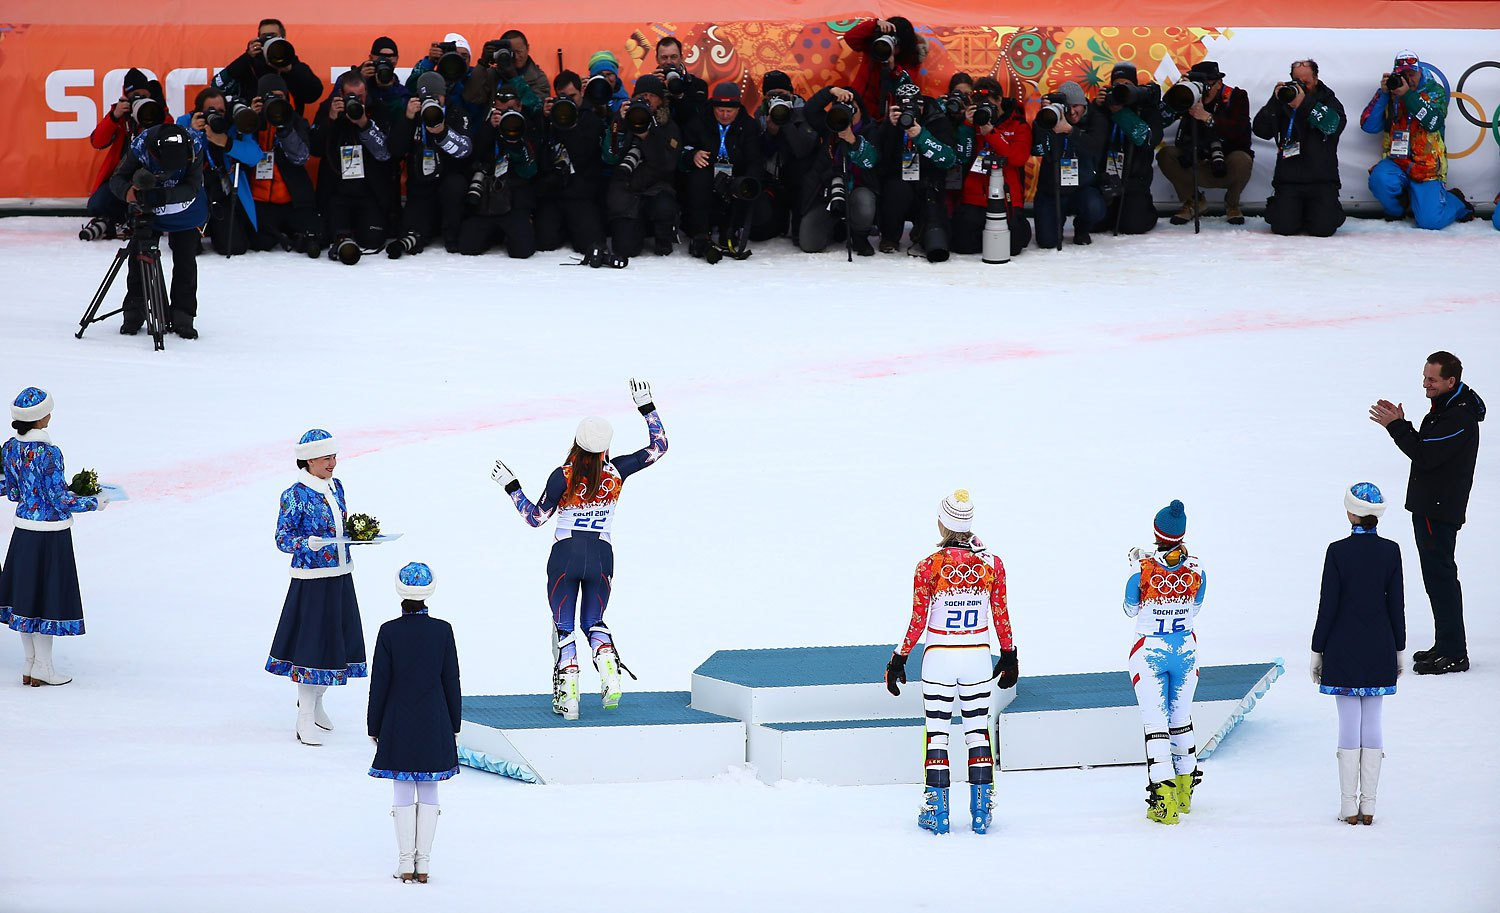 Silver medalist Nicole Hosp of Austria, gold medalist Maria Hoefl-Riesch of Germany and bronze medalist Julia Mancuso of the United States during the flower ceremony for the Alpine Skiing Women's Super Combined at Rosa Khutor Alpine Center on Feb. 10, 2014 in Sochi.